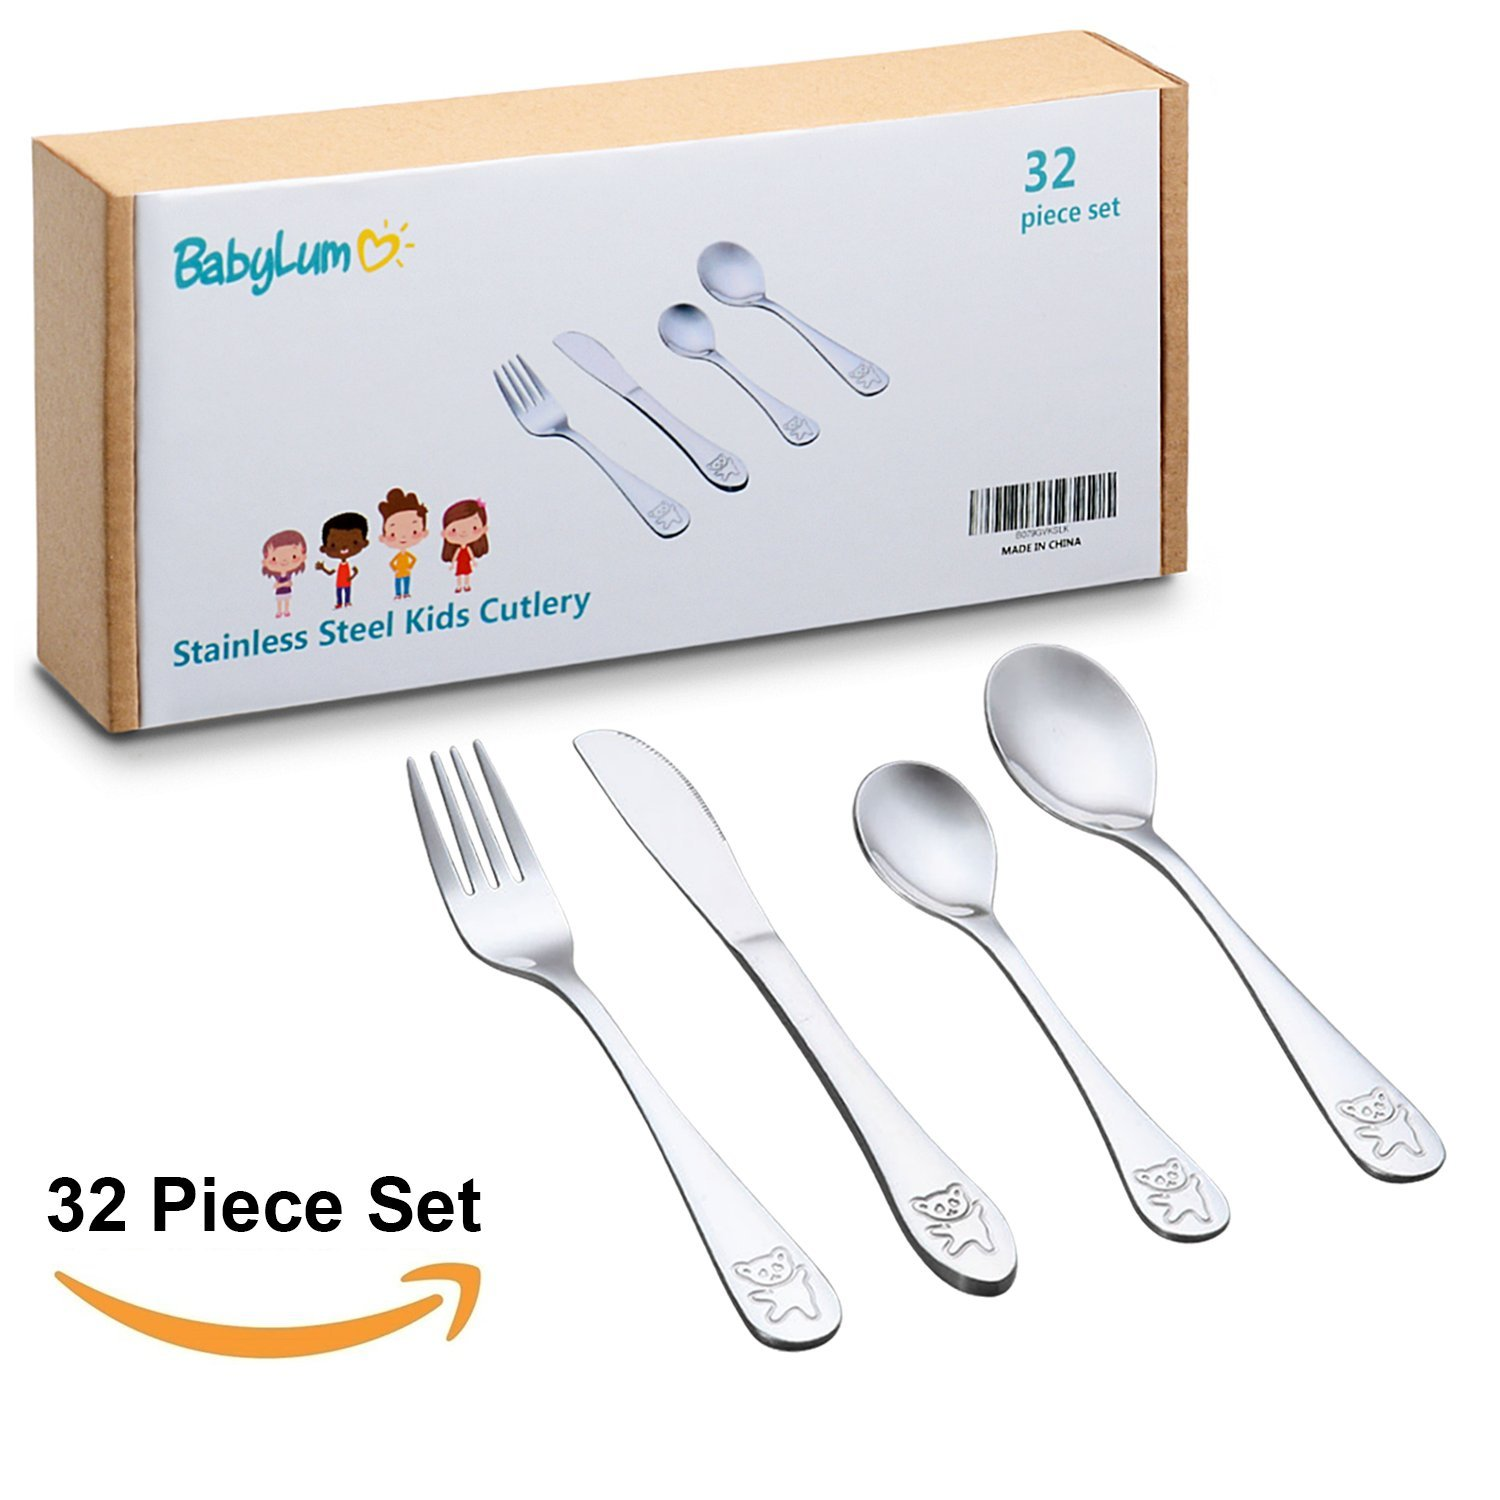 32 Piece Utensils Set for Kids | Stainless Steel Cutlery Flatware | Safe Silverware for Toddler and Child | Total 8 Place Settings with 8 Knives, 8 Forks, 8 Spoons, 8 Dessert Spoons.